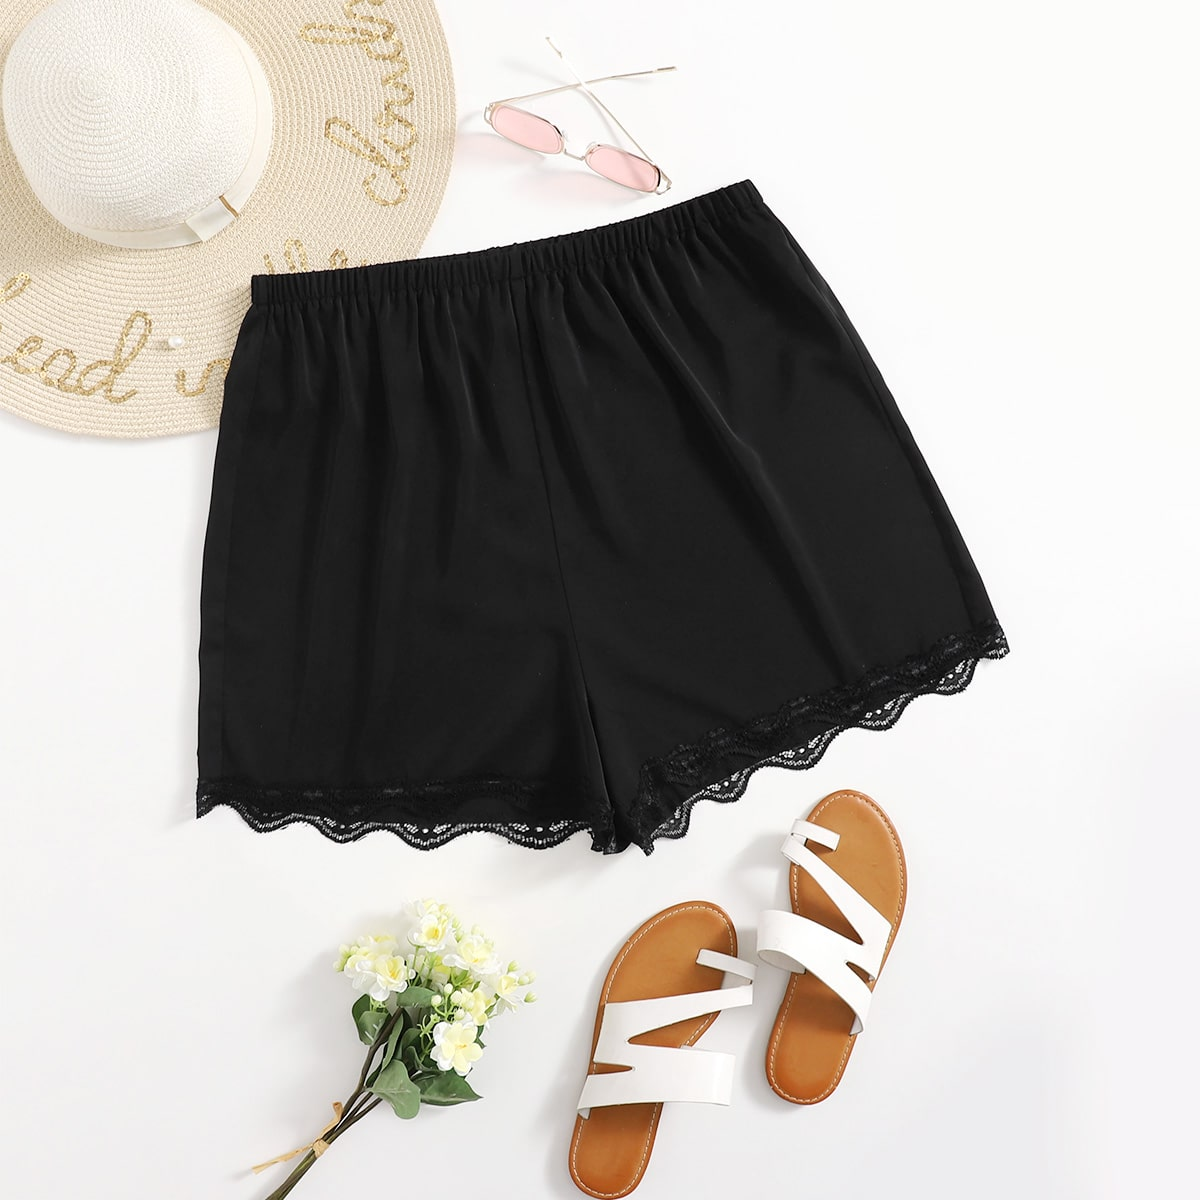 SHEIN Casual Vlak Short grote maat Contract kant